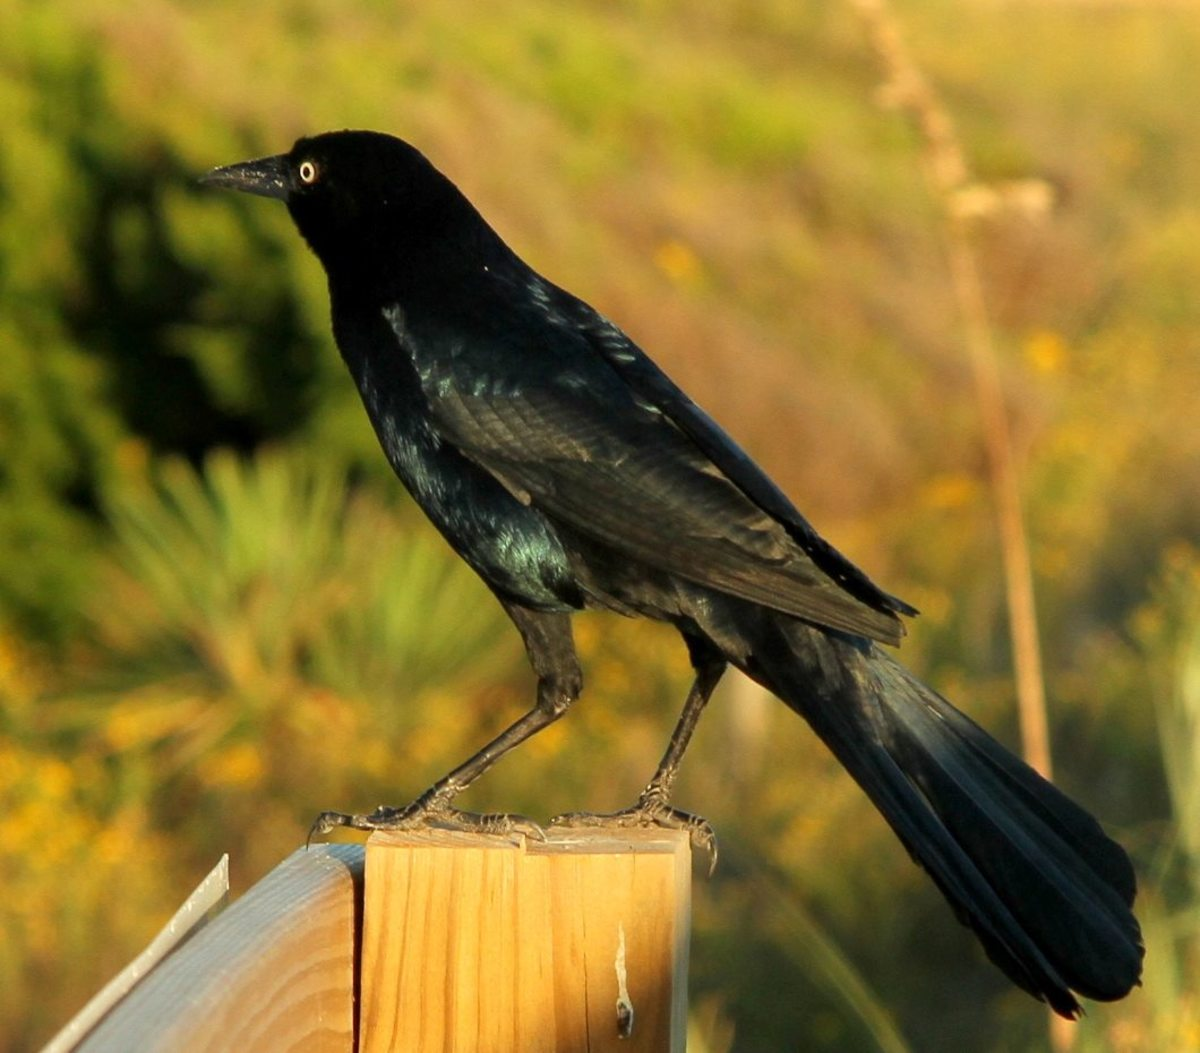 Ravens, such as this Grackle, are mentioned many times in the Bible.